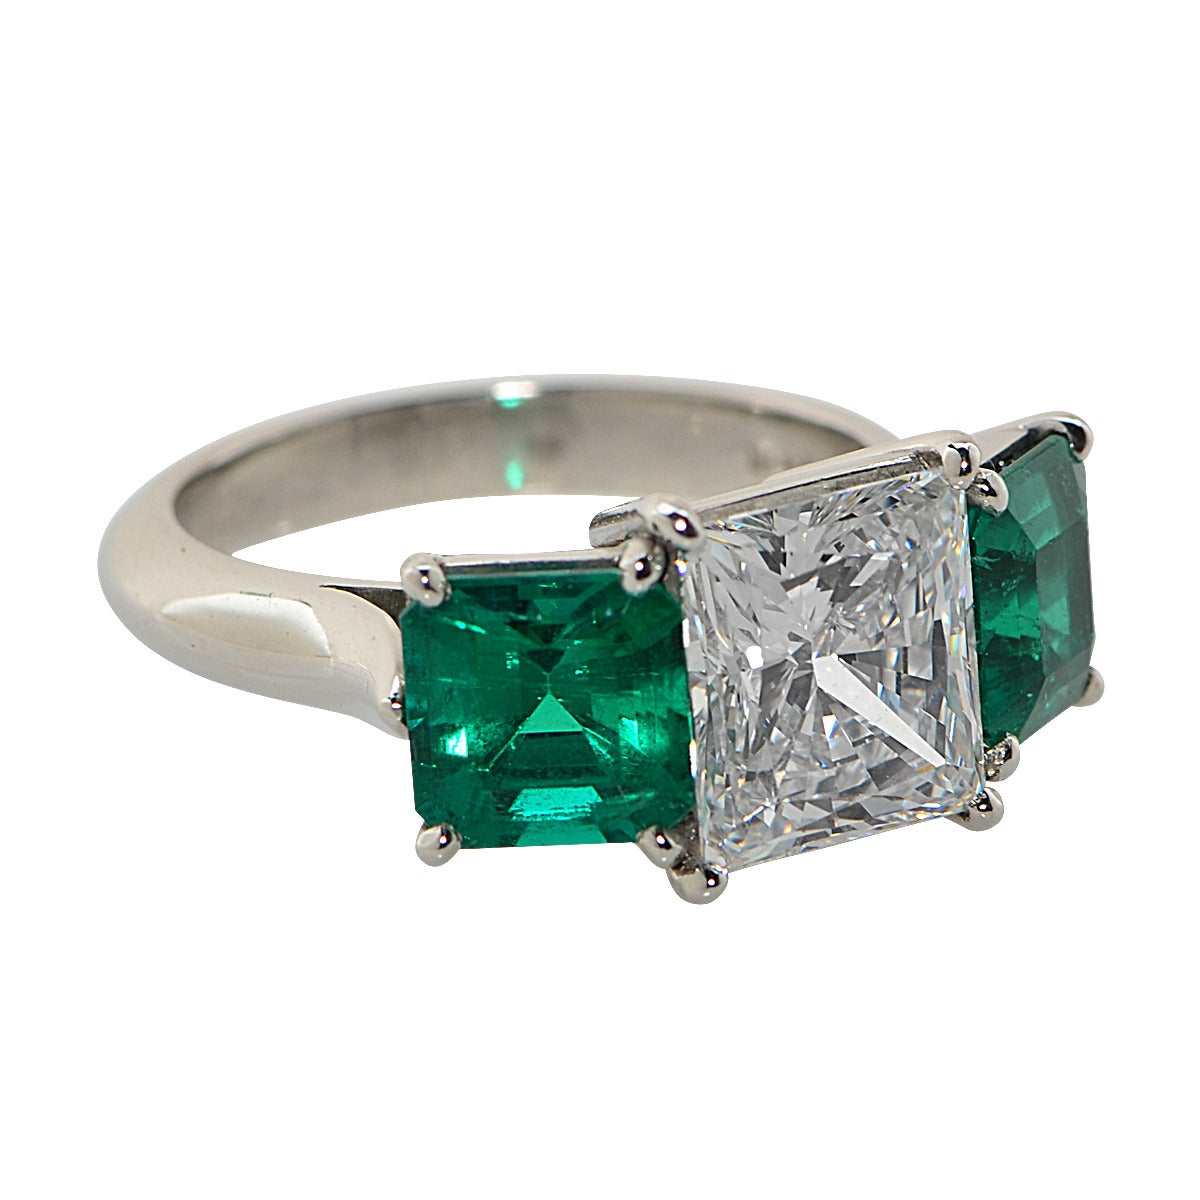 2 32 Carat F VS2 GIA Princess Cut Diamond and Emerald Ring For Sale at 1stdibs